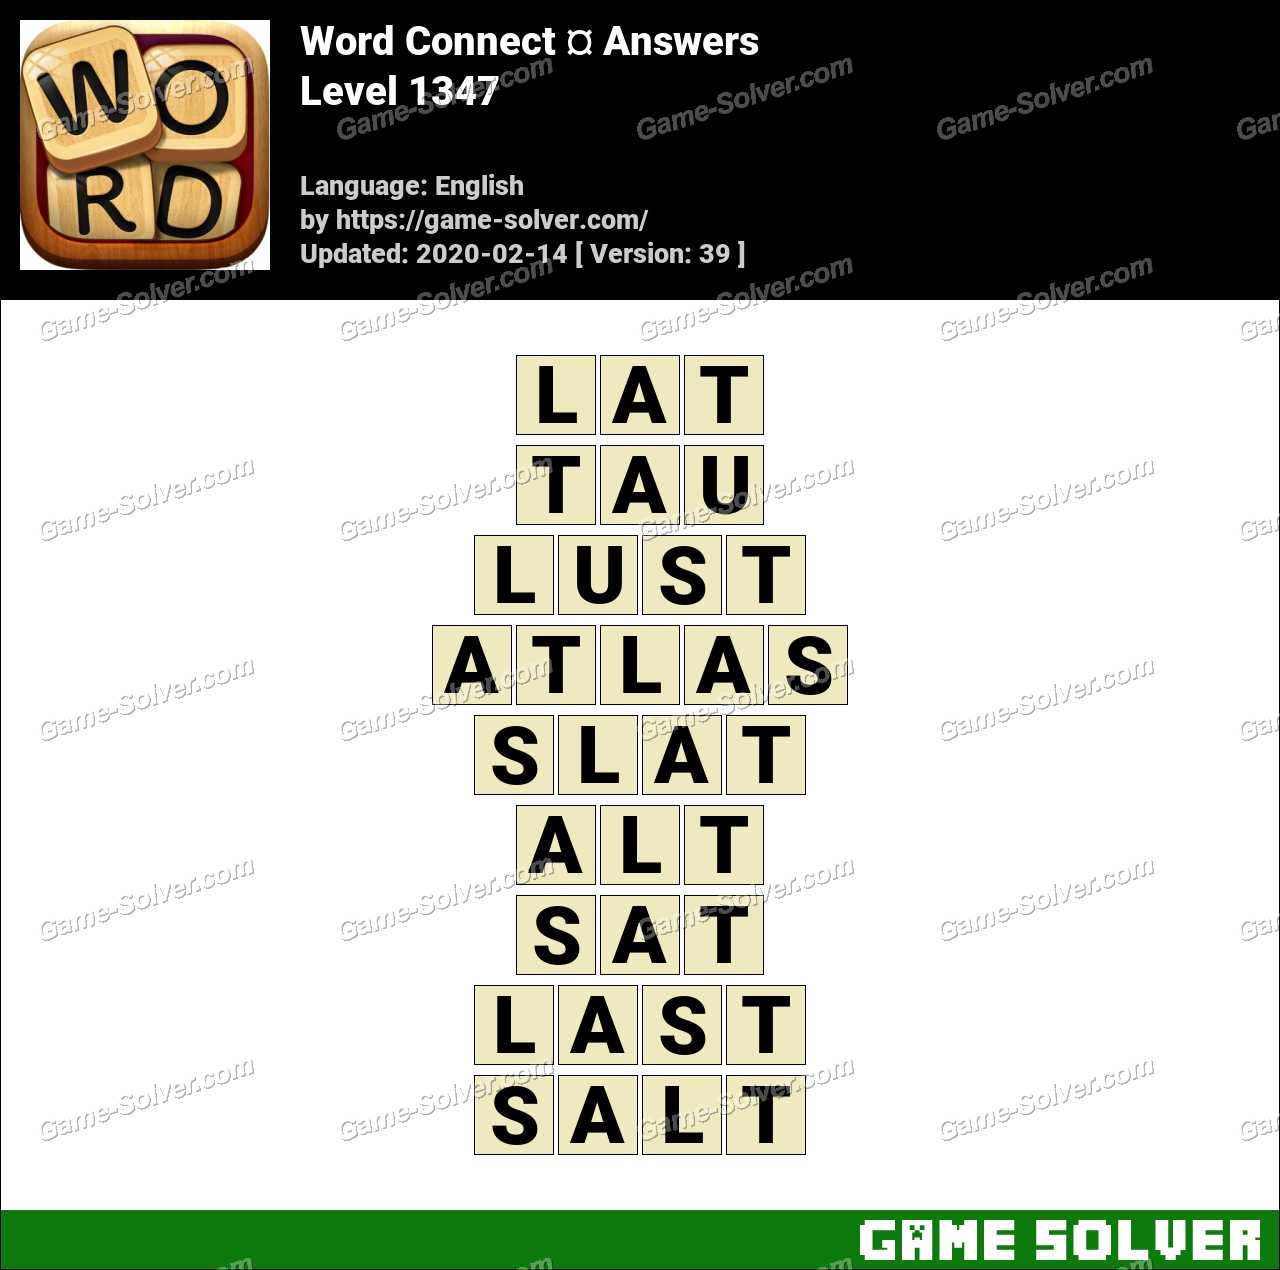 Word Connect Level 1347 Answers